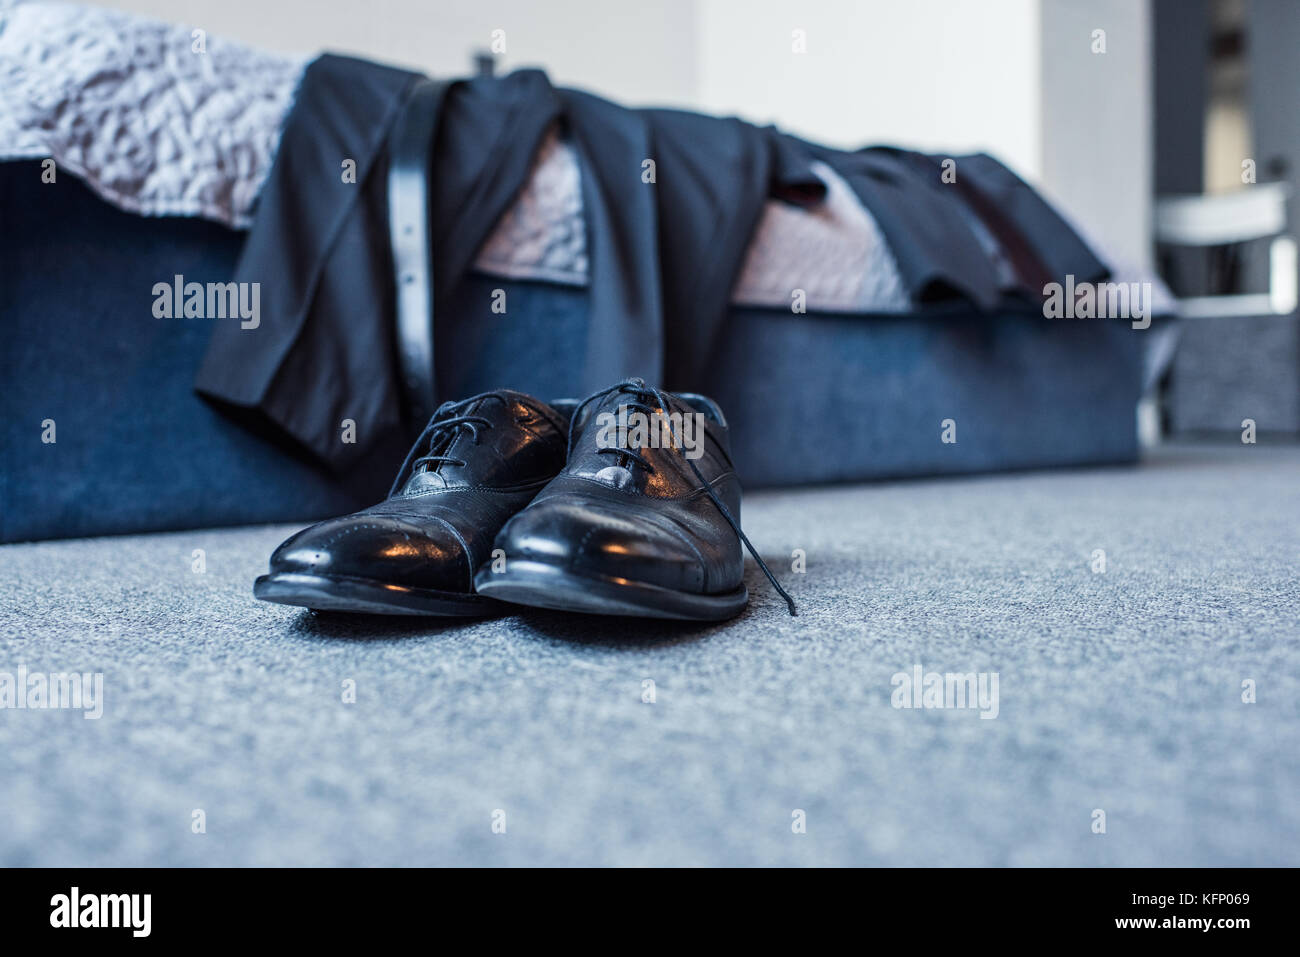 Formal attire on bed and leather shoes - Stock Image